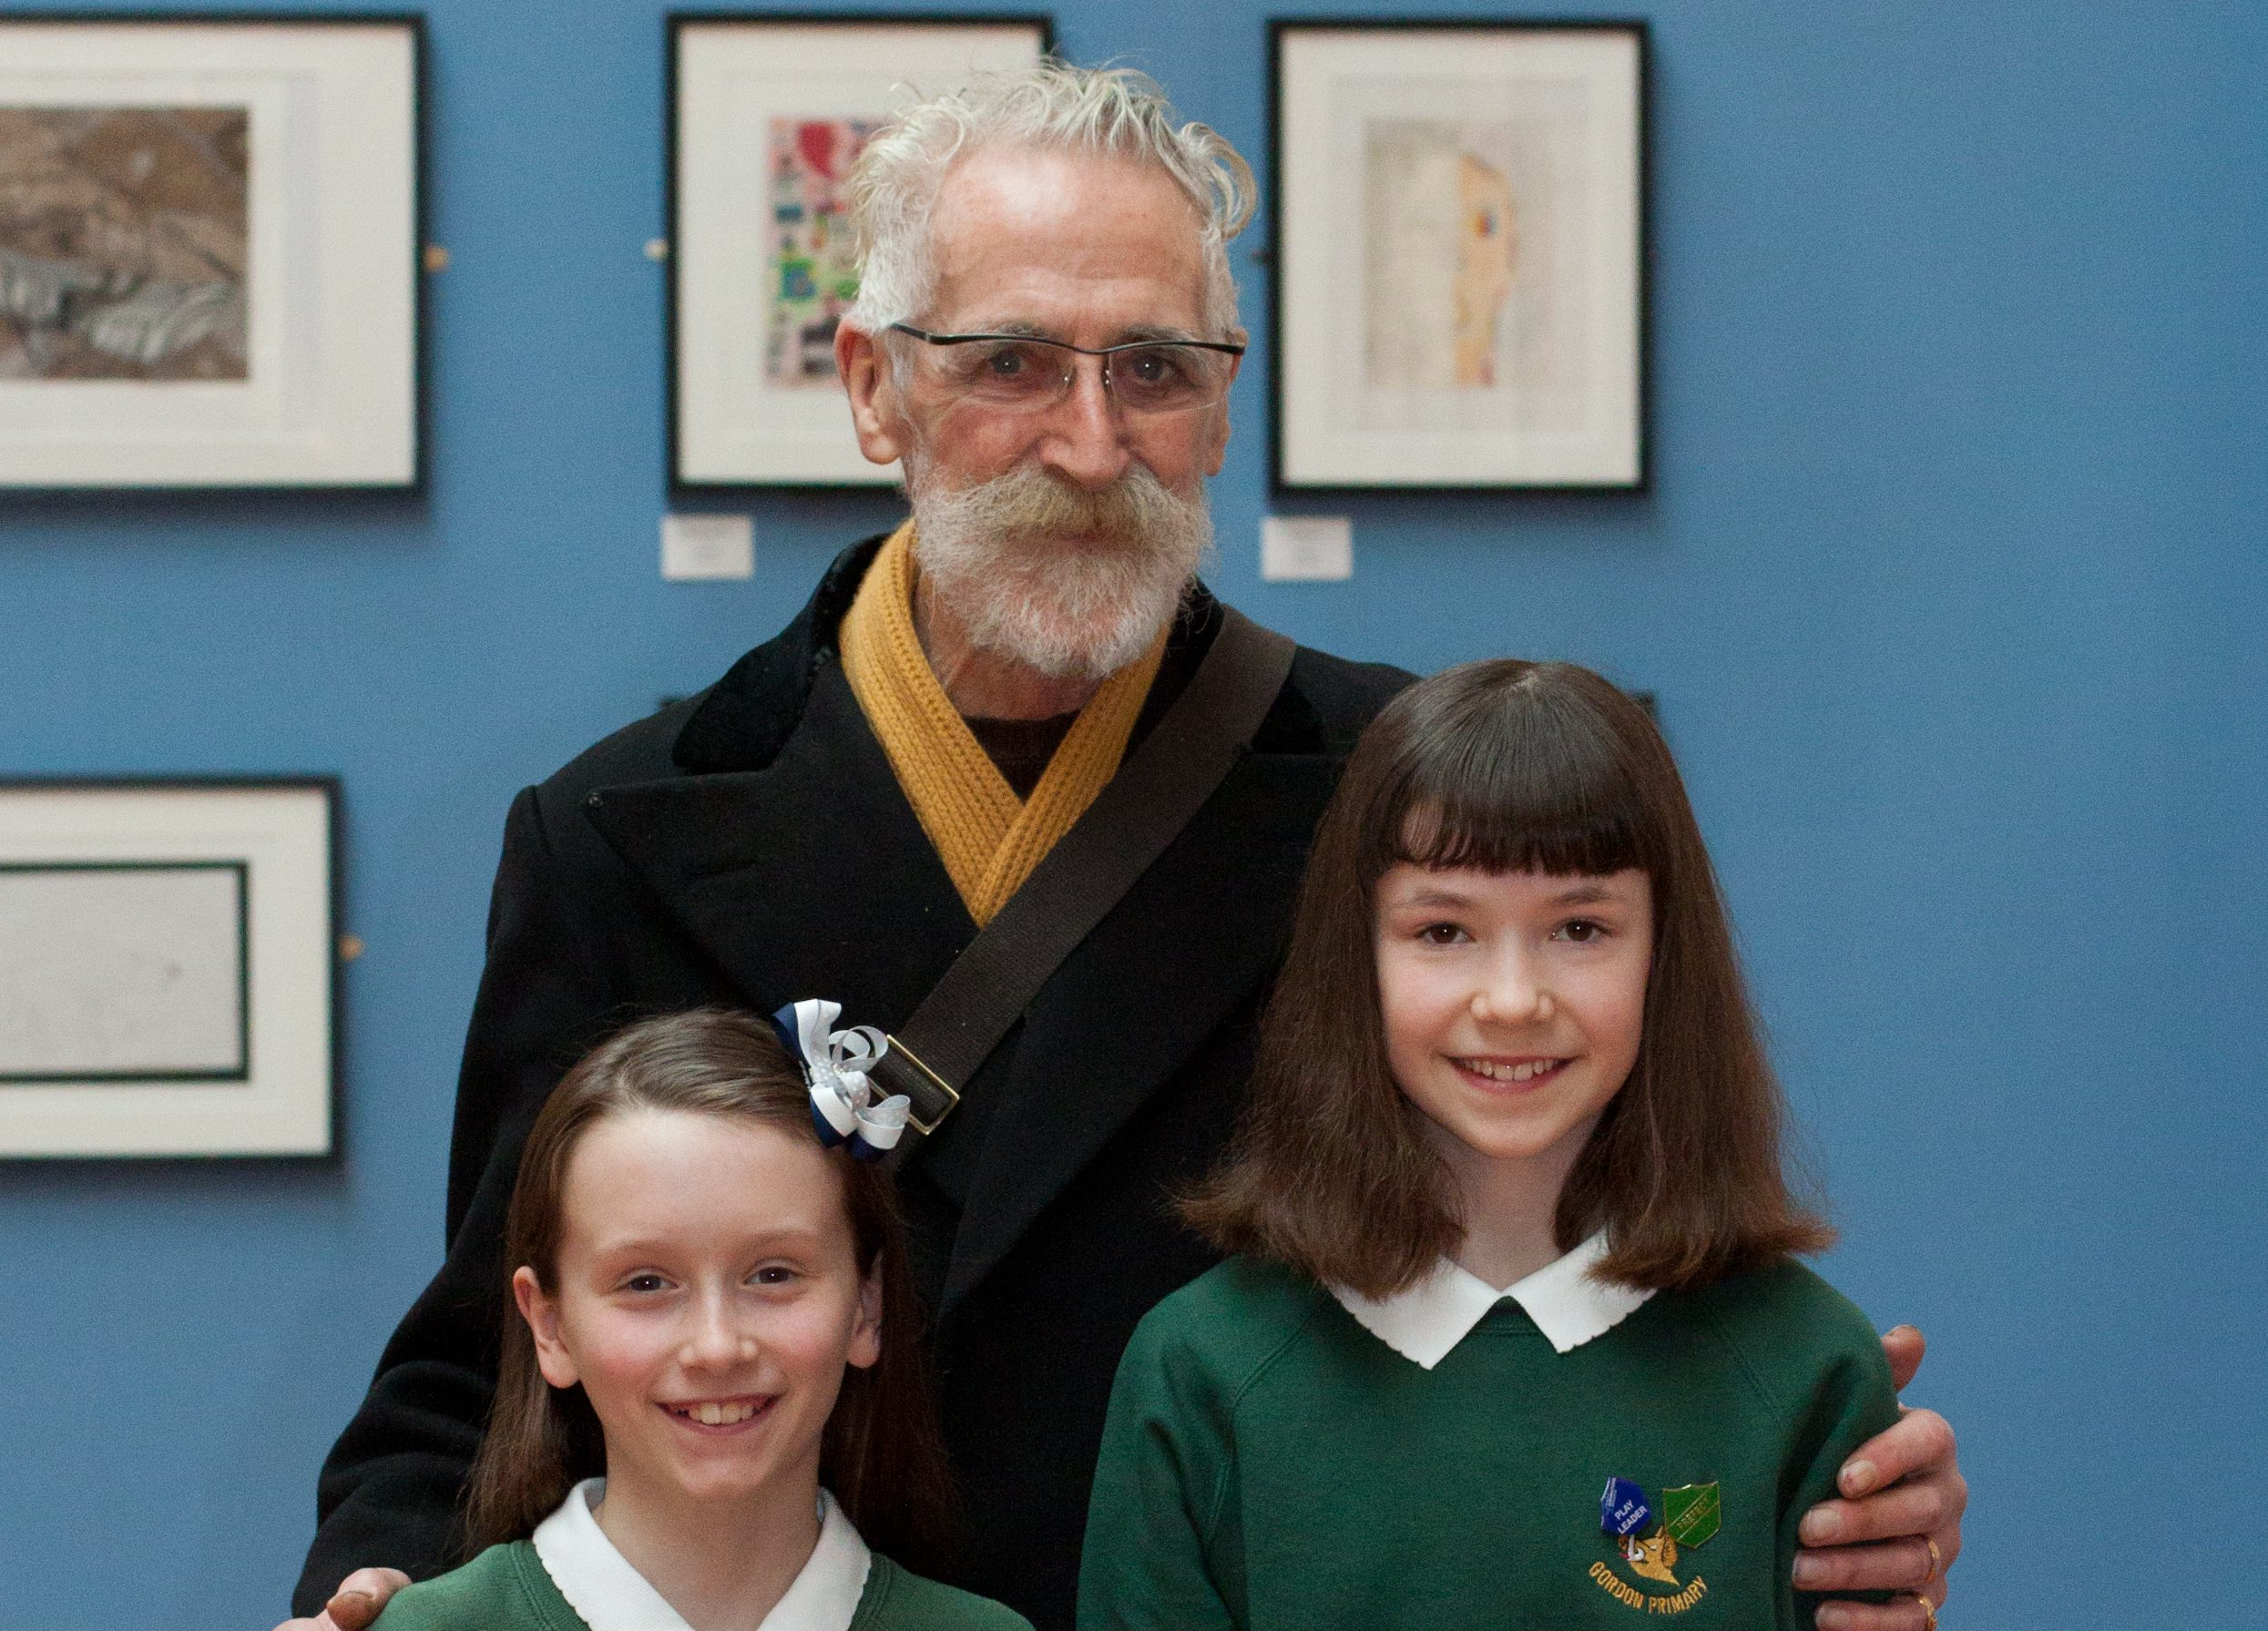 John Byrne pictured with Gordon Schools pupils Charlotte Stewart and Scout Knight.